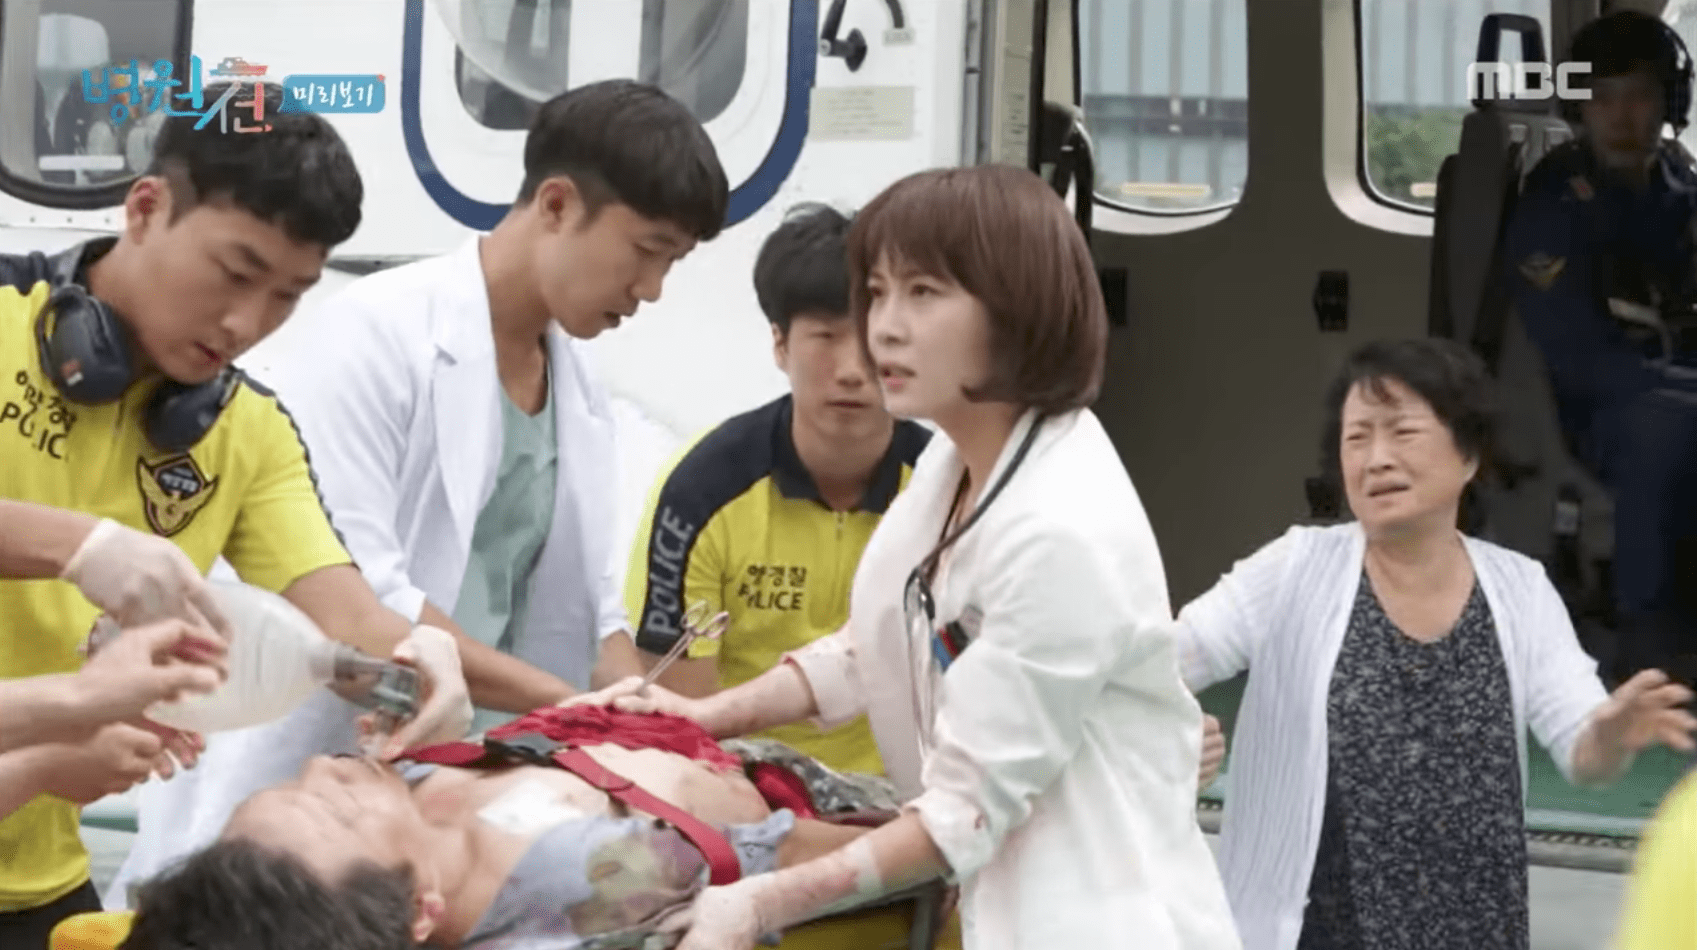 Watch: Cast Of Hospital Ship Film In Helicopter And Undergo Medical Training To Prep For Drama